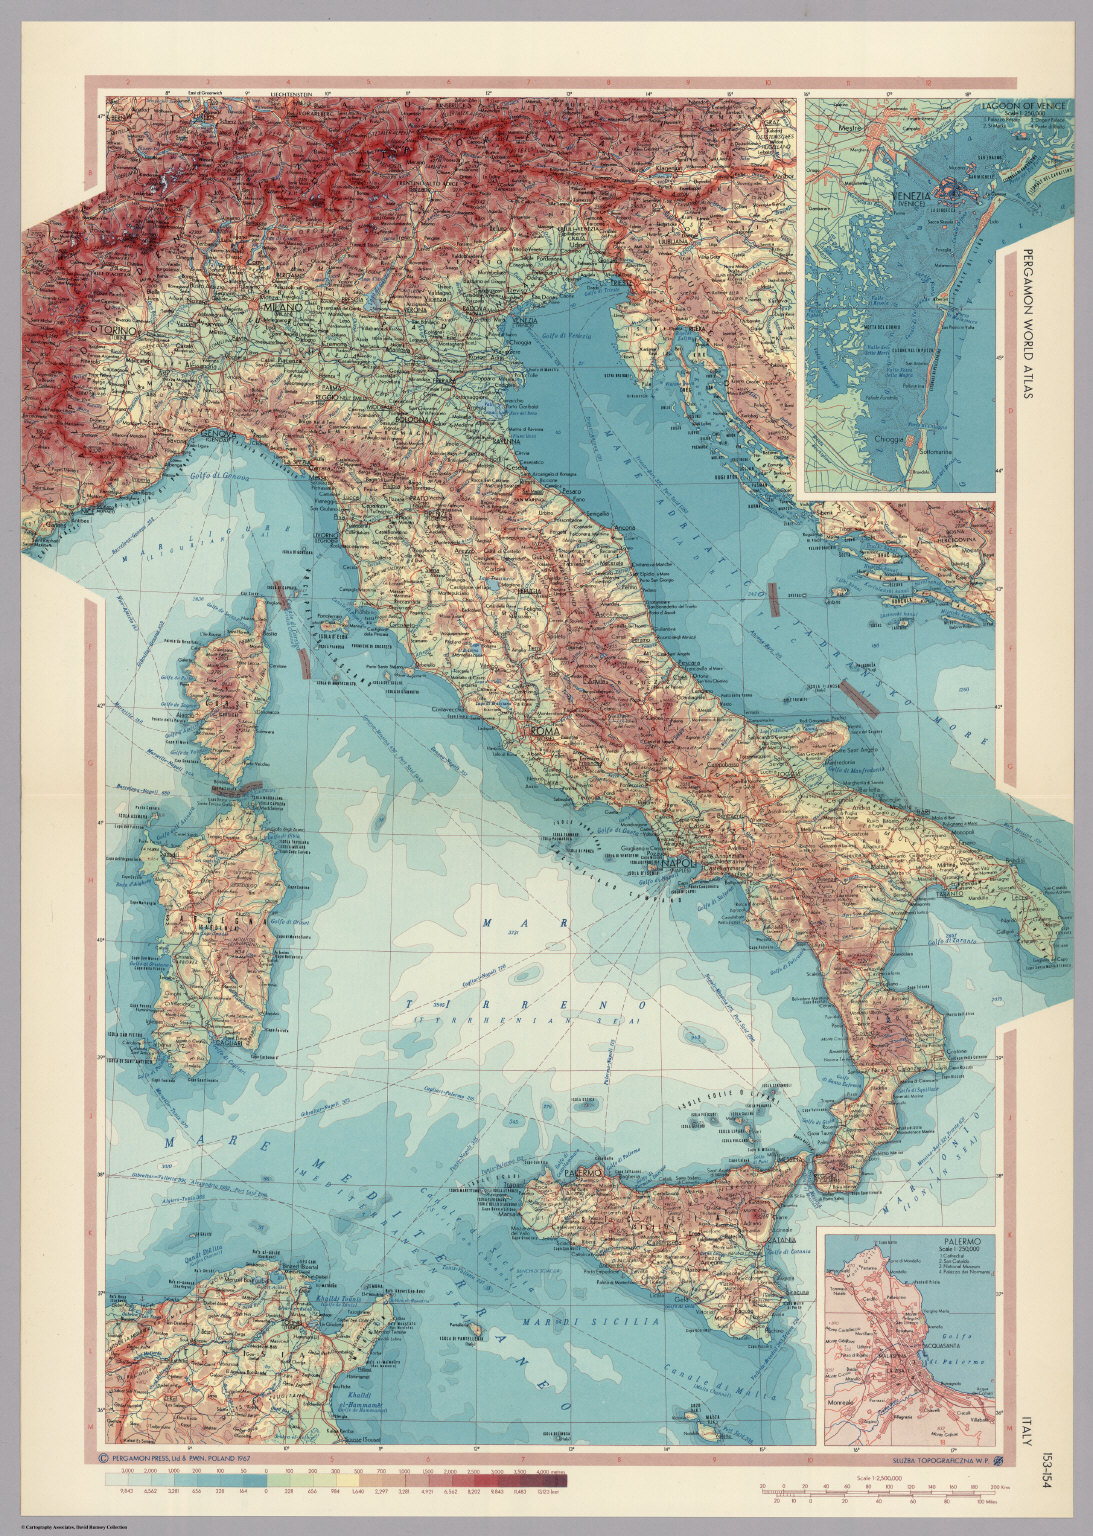 Italy pergamon world atlas david rumsey historical map collection italy pergamon world atlas gumiabroncs Gallery